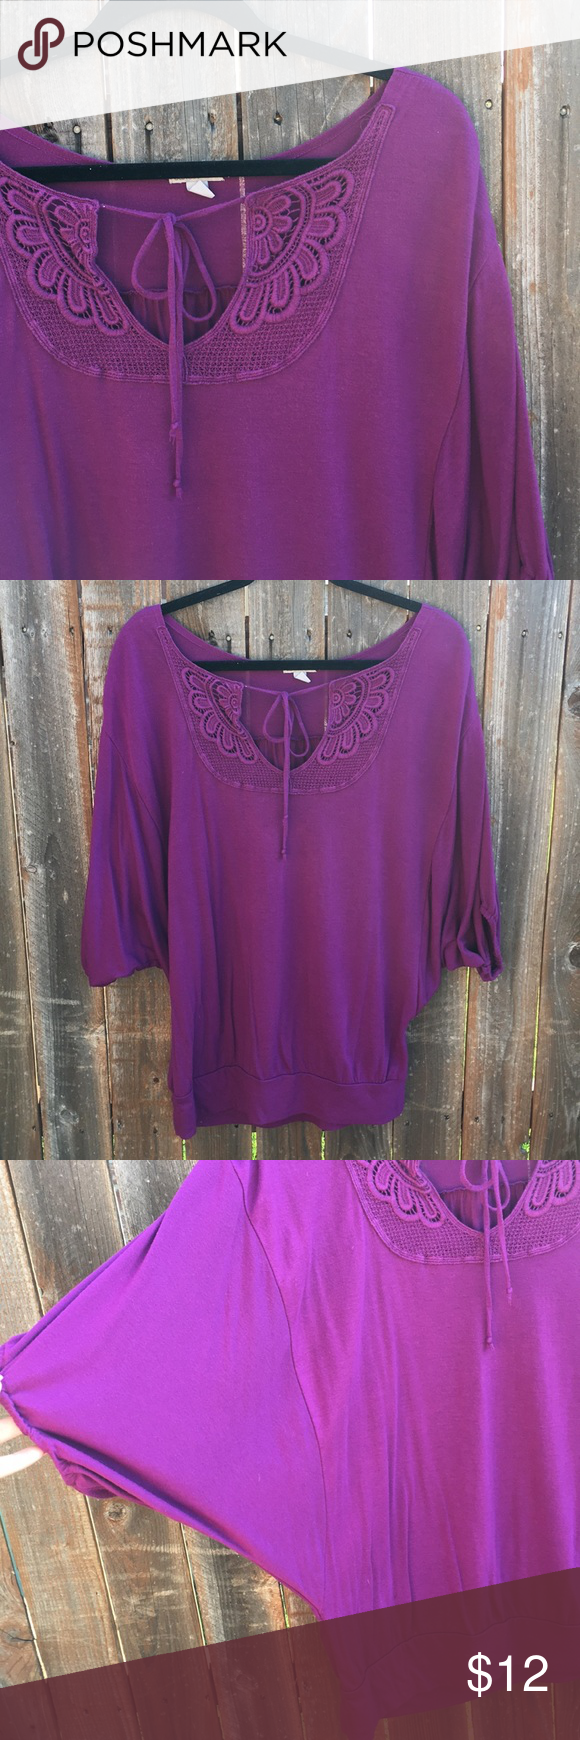 • [old navy] plum butterfly sleeve top • Pretty plum colored flowy top from Old Navy. Worn a handful of times, size medium. Pretty details at the neck, the tie can either be worn tied or open. Open dolman/butterfly style sleeves. Banded bottom. Super flattering. In Good used condition.   ❌NO TRADES ❌NO OFF APP PAYMENT 🚭SMOKE FREE HOME 🐶🐶 TWO PUPS  #0214 Old Navy Tops